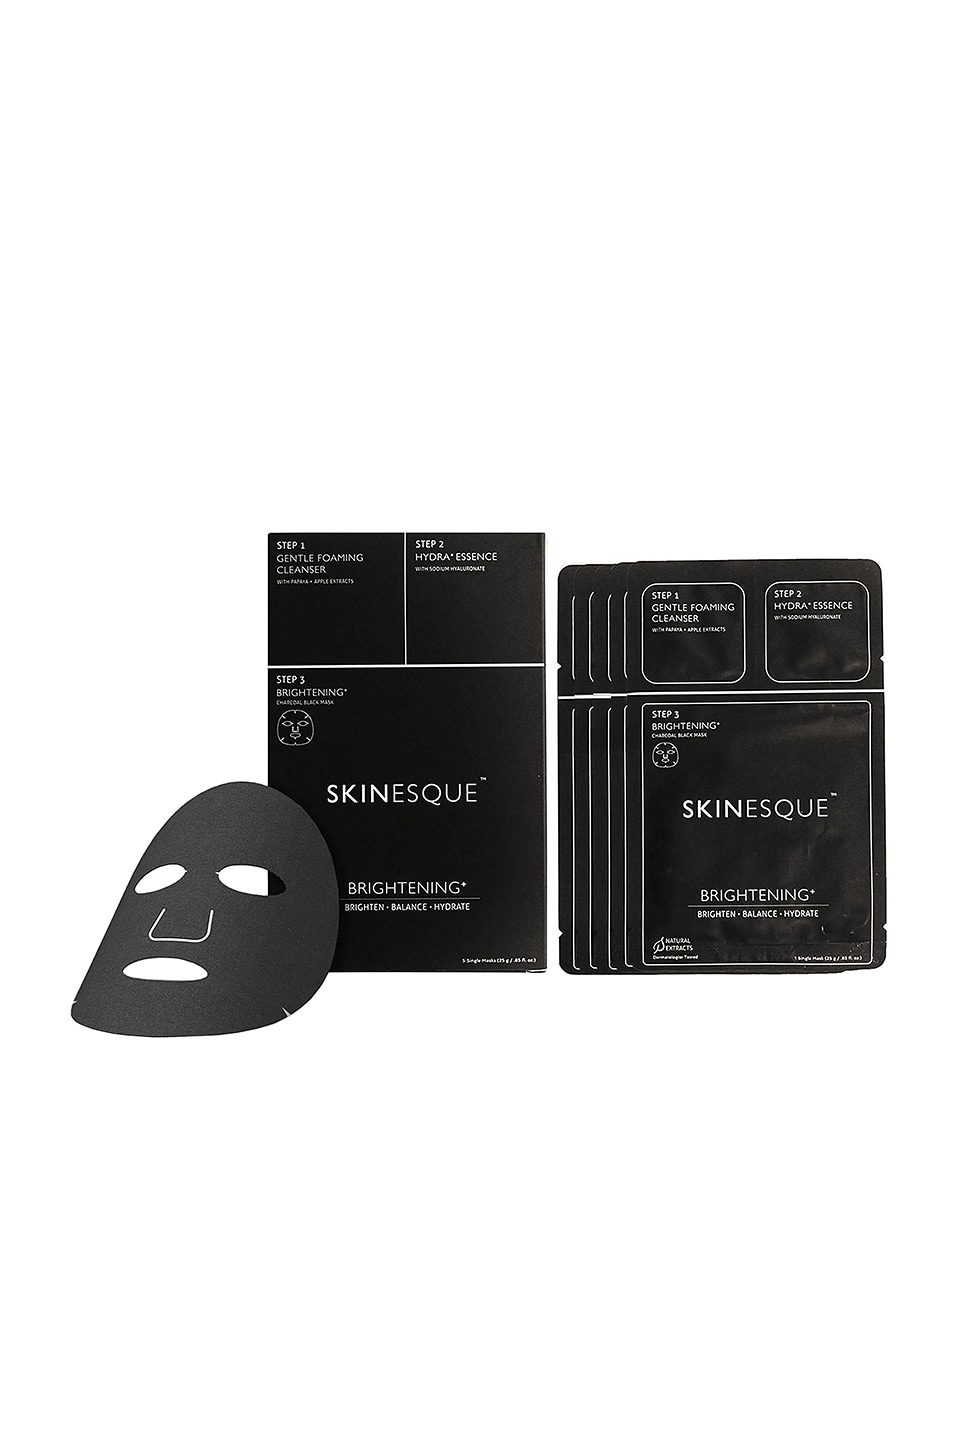 SKINESQUE 3 STEP BRIGHTENING AND CHARCOAL MASK